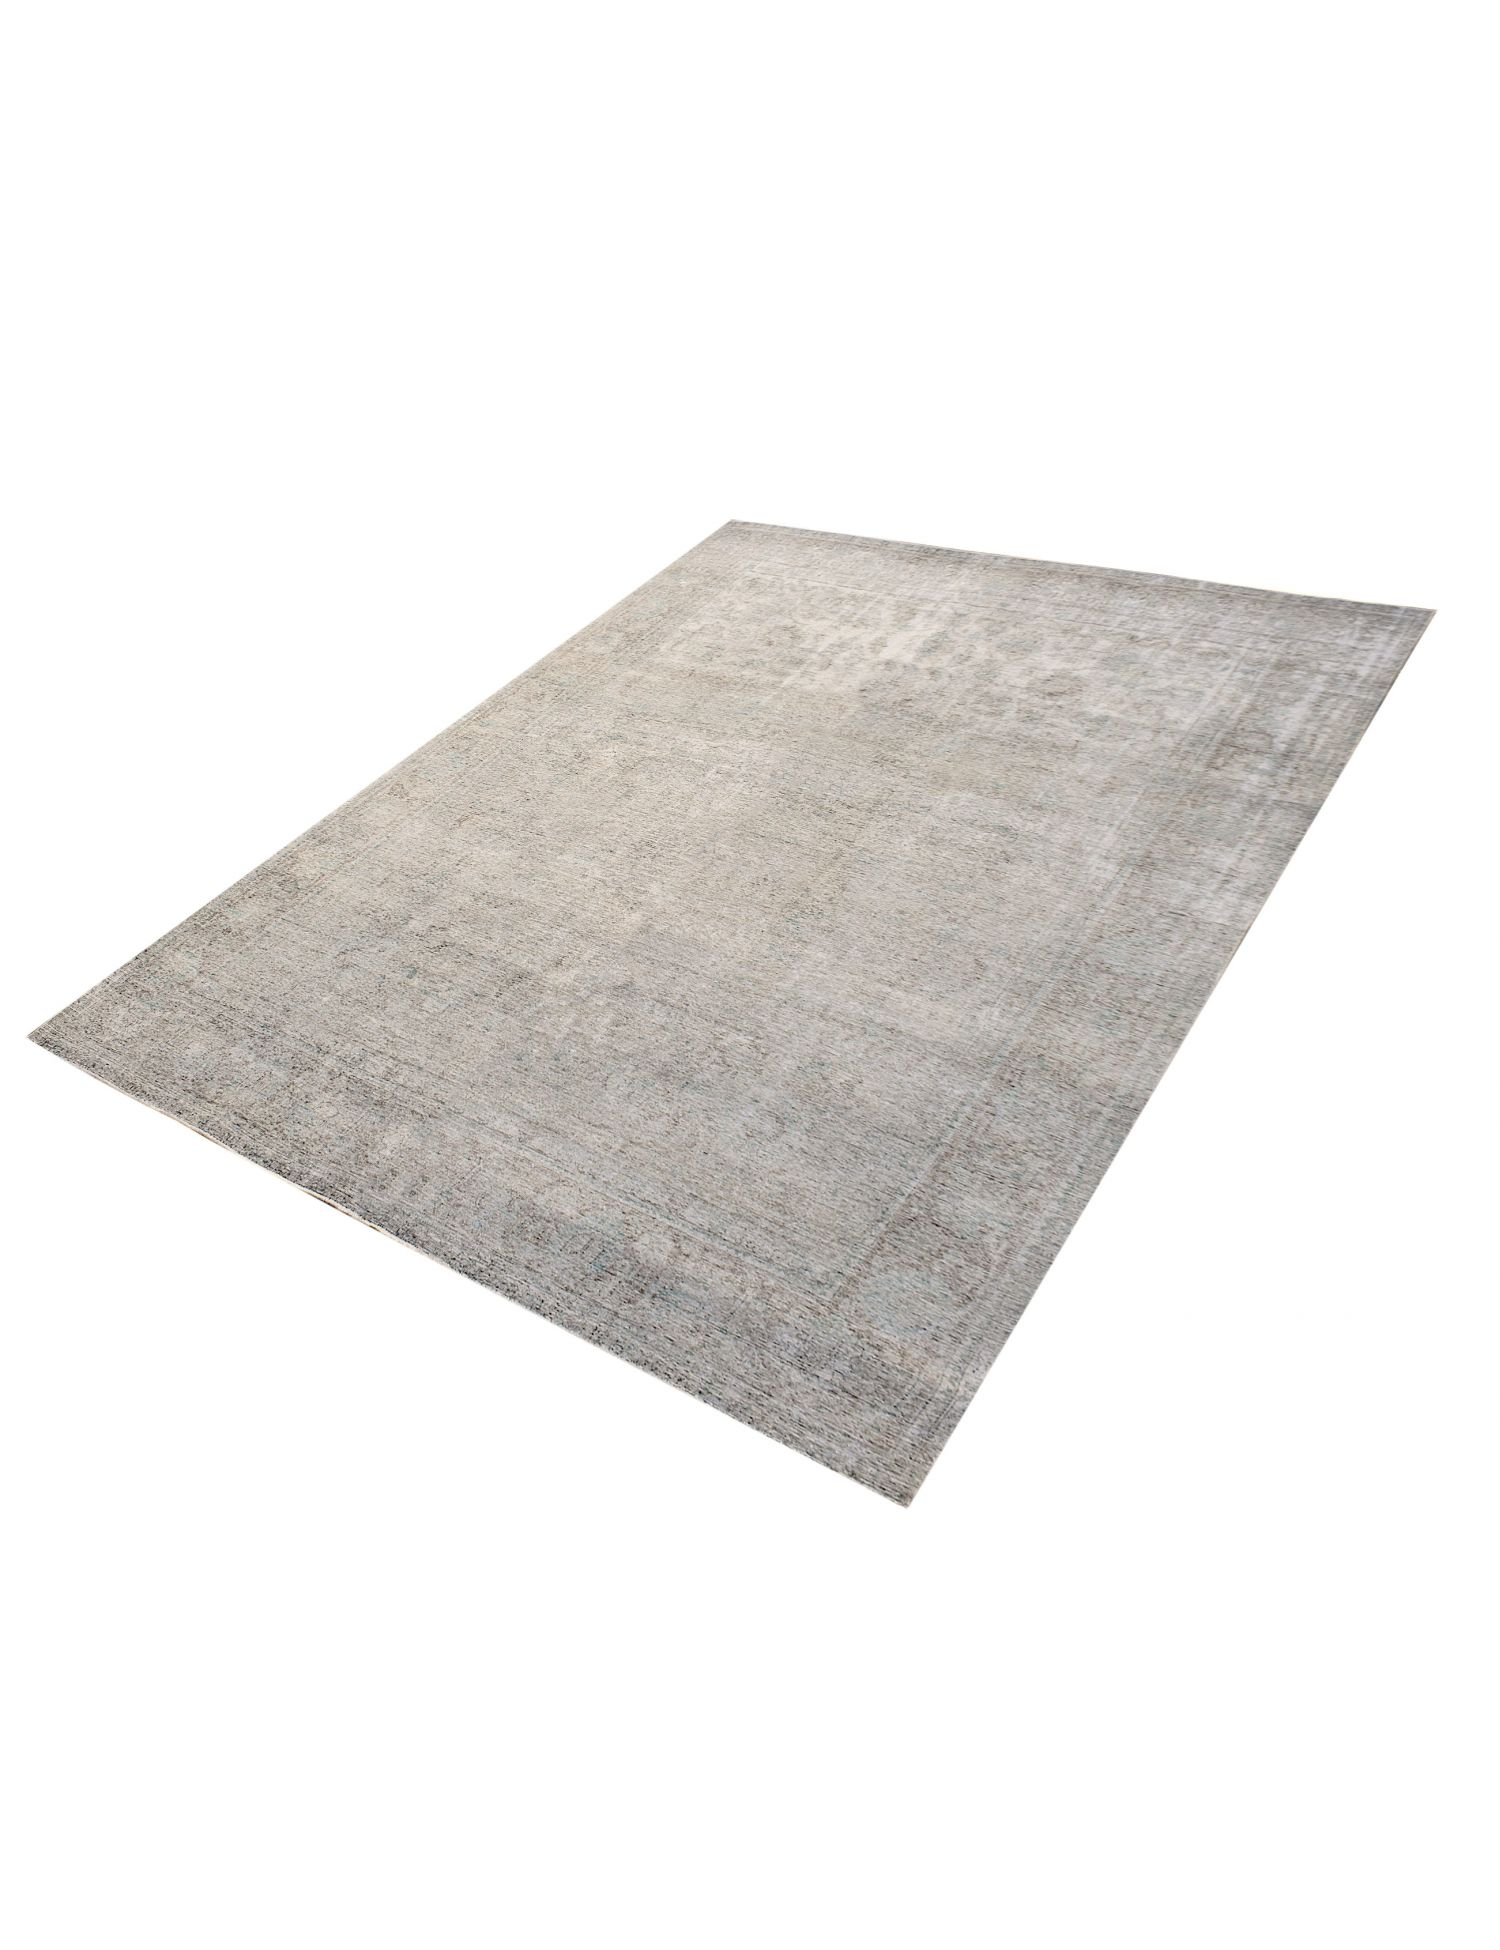 Vintage Carpet  grey <br/>381 x 279 cm